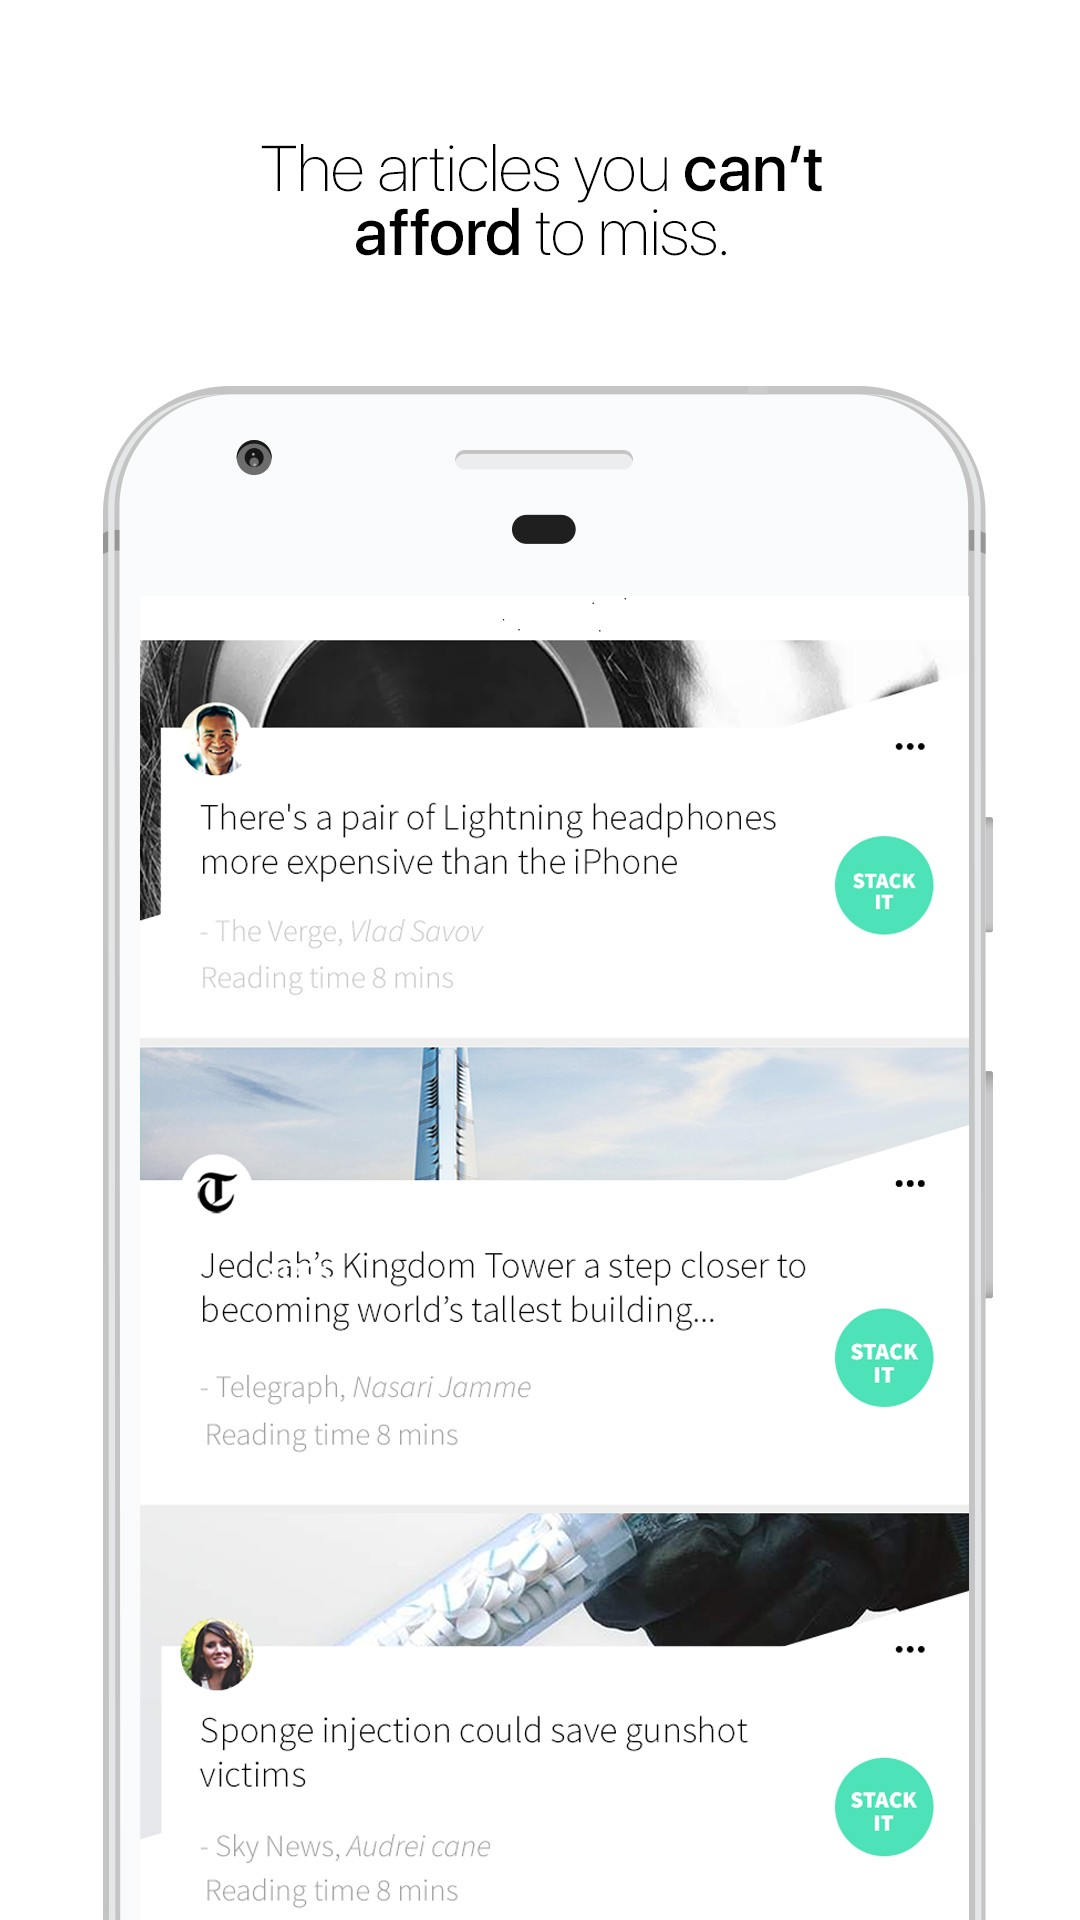 Stack - The articles you can't afford to miss